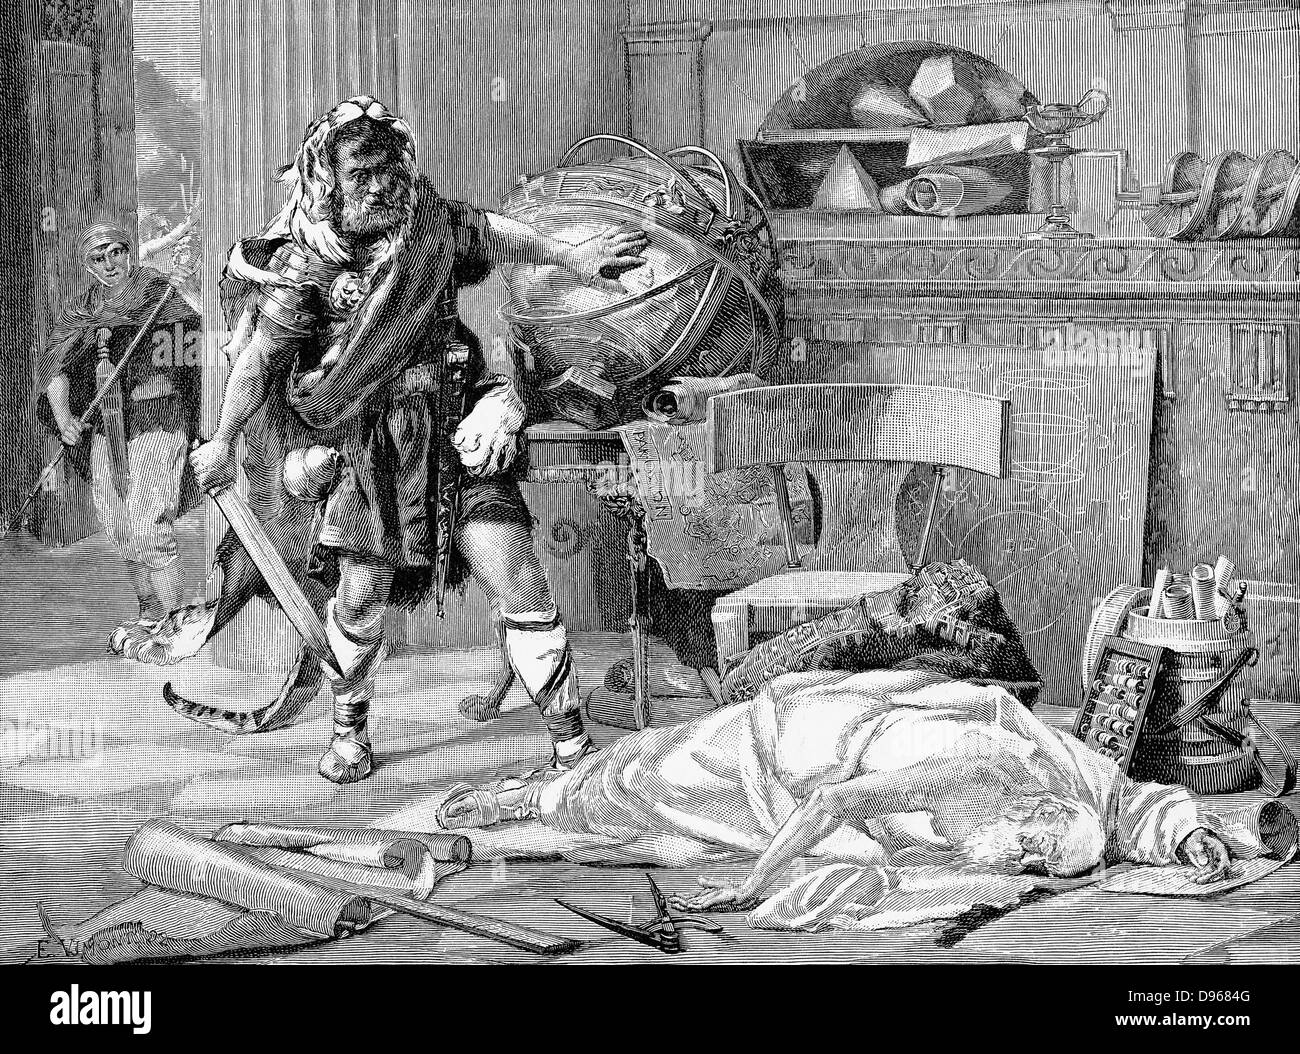 Archimedes (c287-212 BC) Ancient Greek mathematician and inventor. The death of Archimedes at the capture of Syracuse - Stock Image